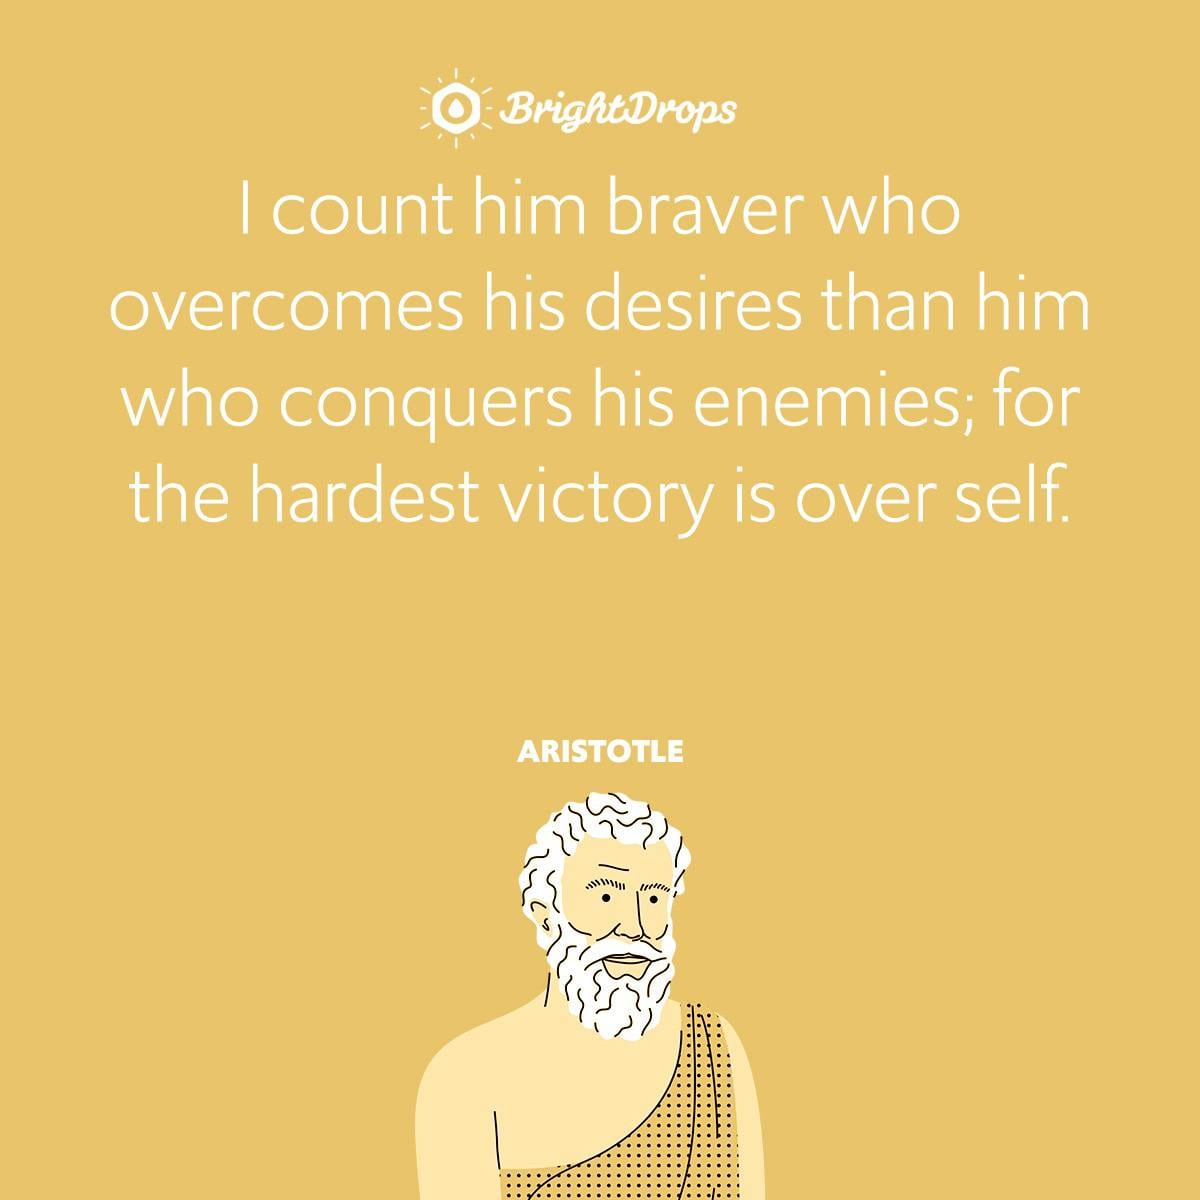 I count him braver who overcomes his desires than him who conquers his enemies; for the hardest victory is over self.